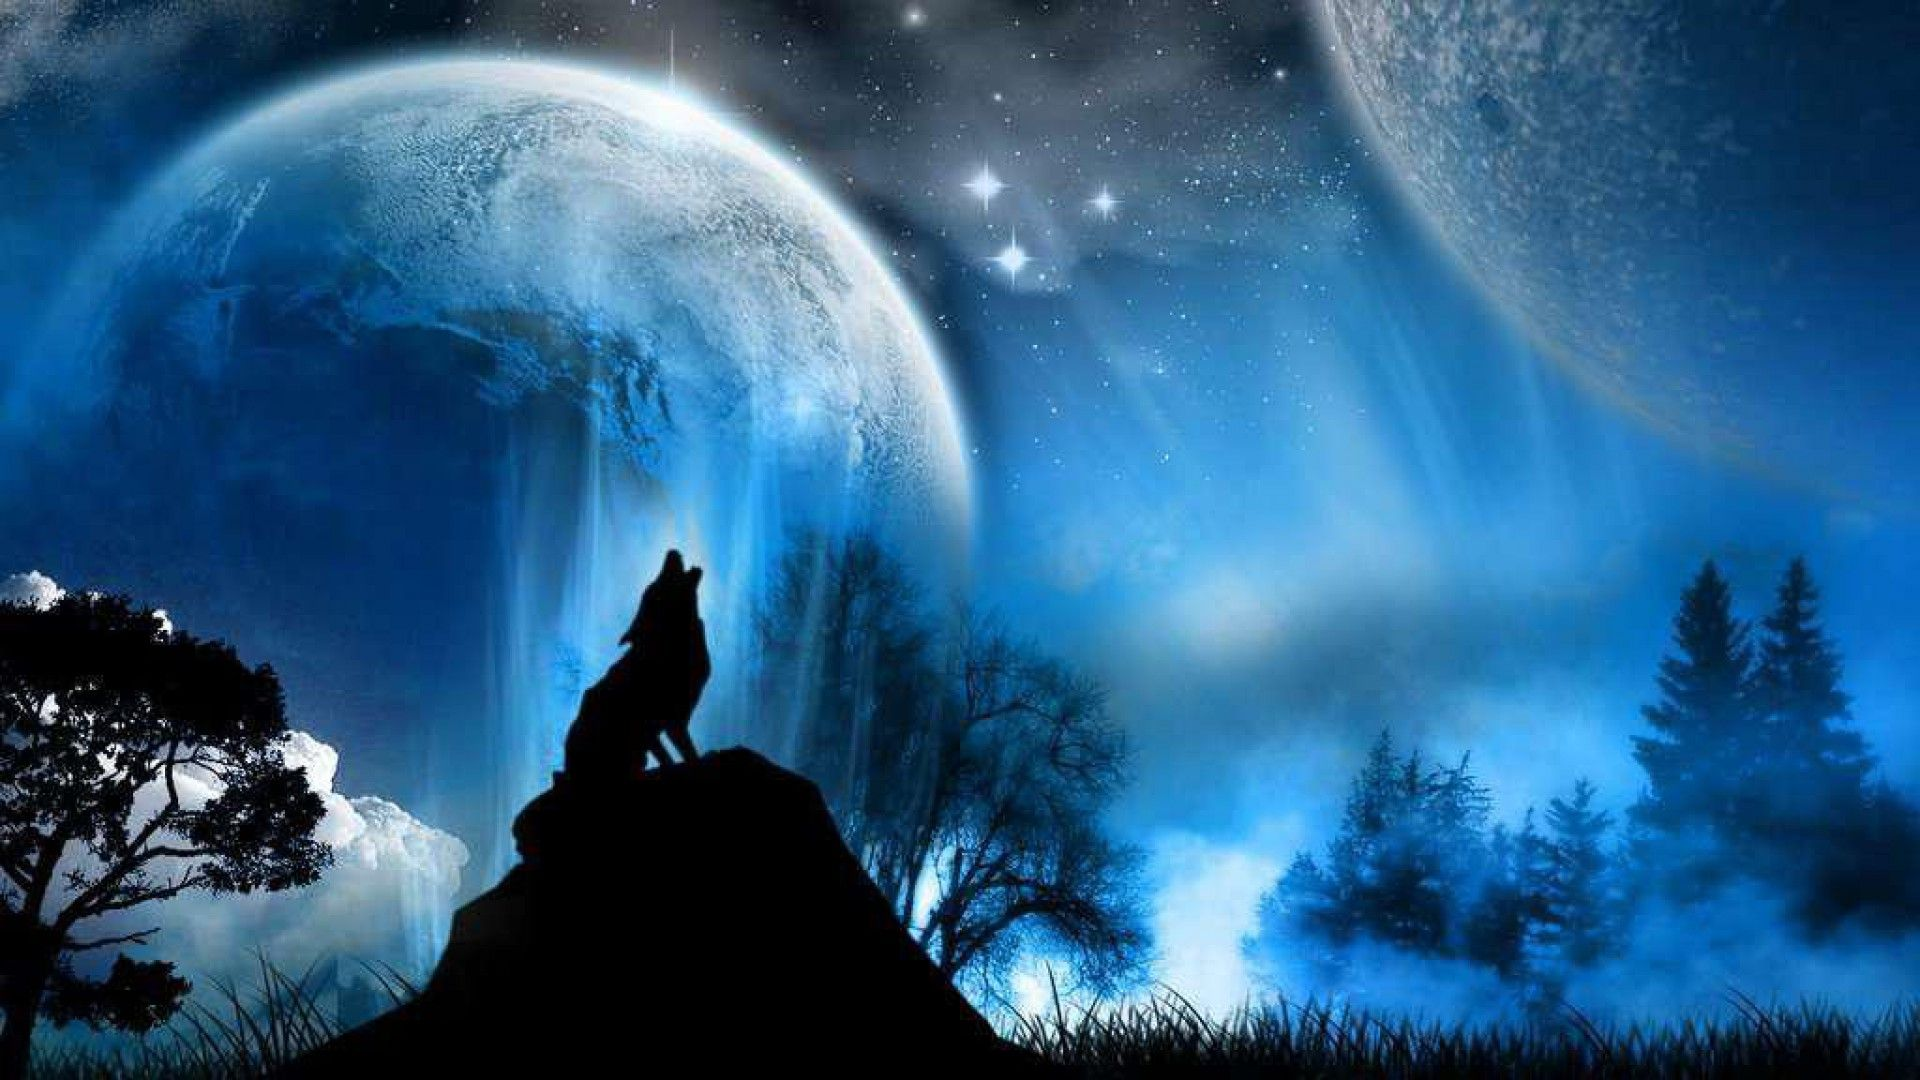 Hd wallpaper wolf - Wolf Wallpaper Hd 1080p Desktop 1223 Wallpaper Walldesktophd